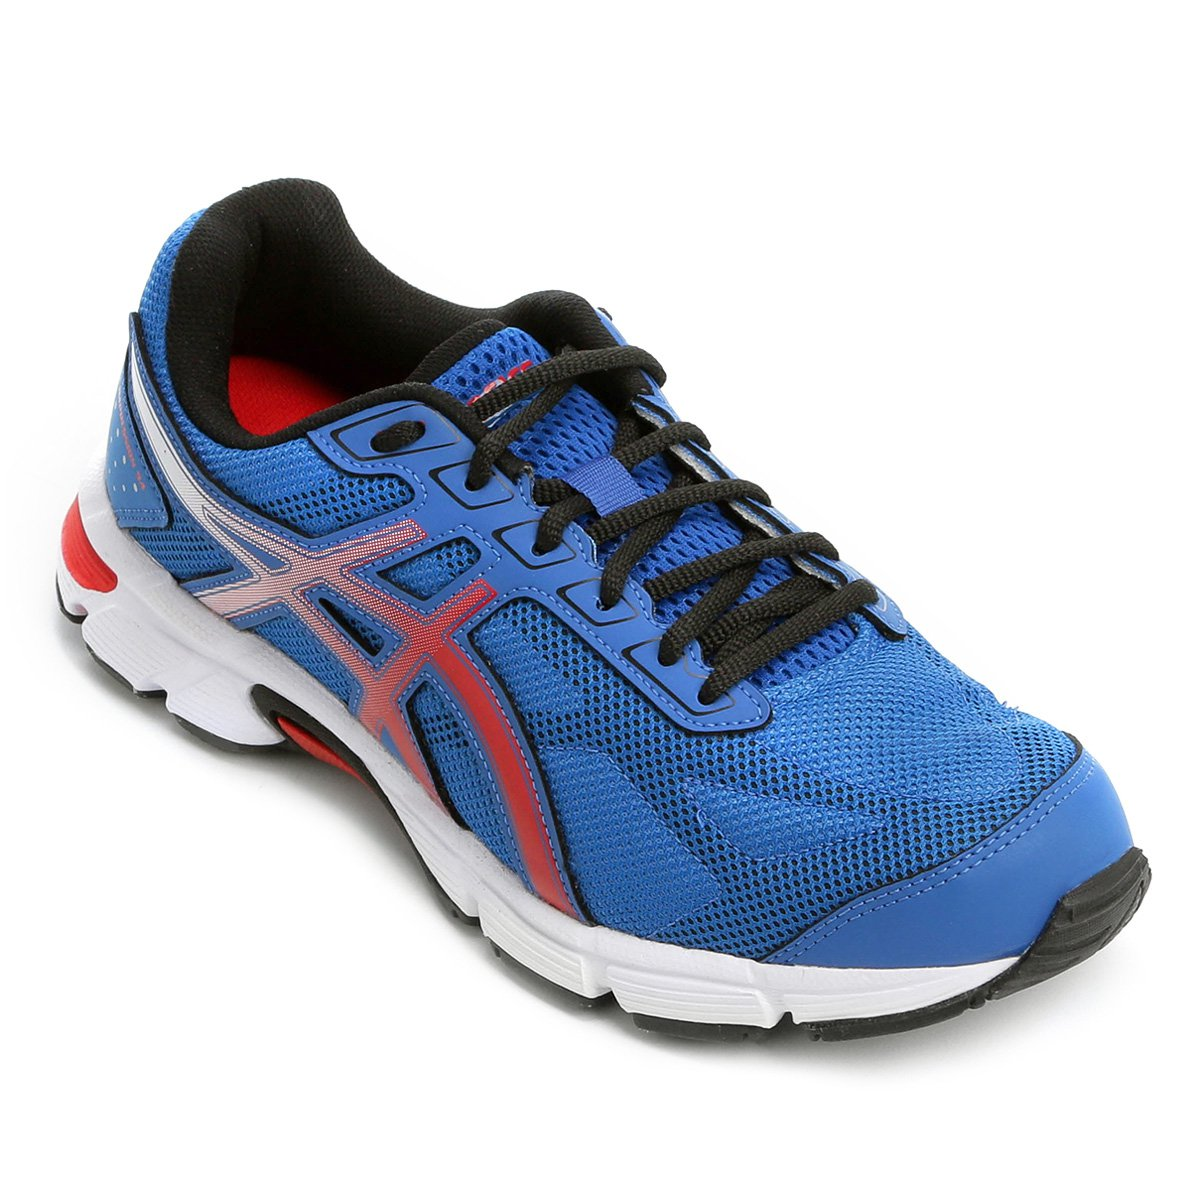 a1449286cd Tênis Asics Gel Impression 9 Masculino